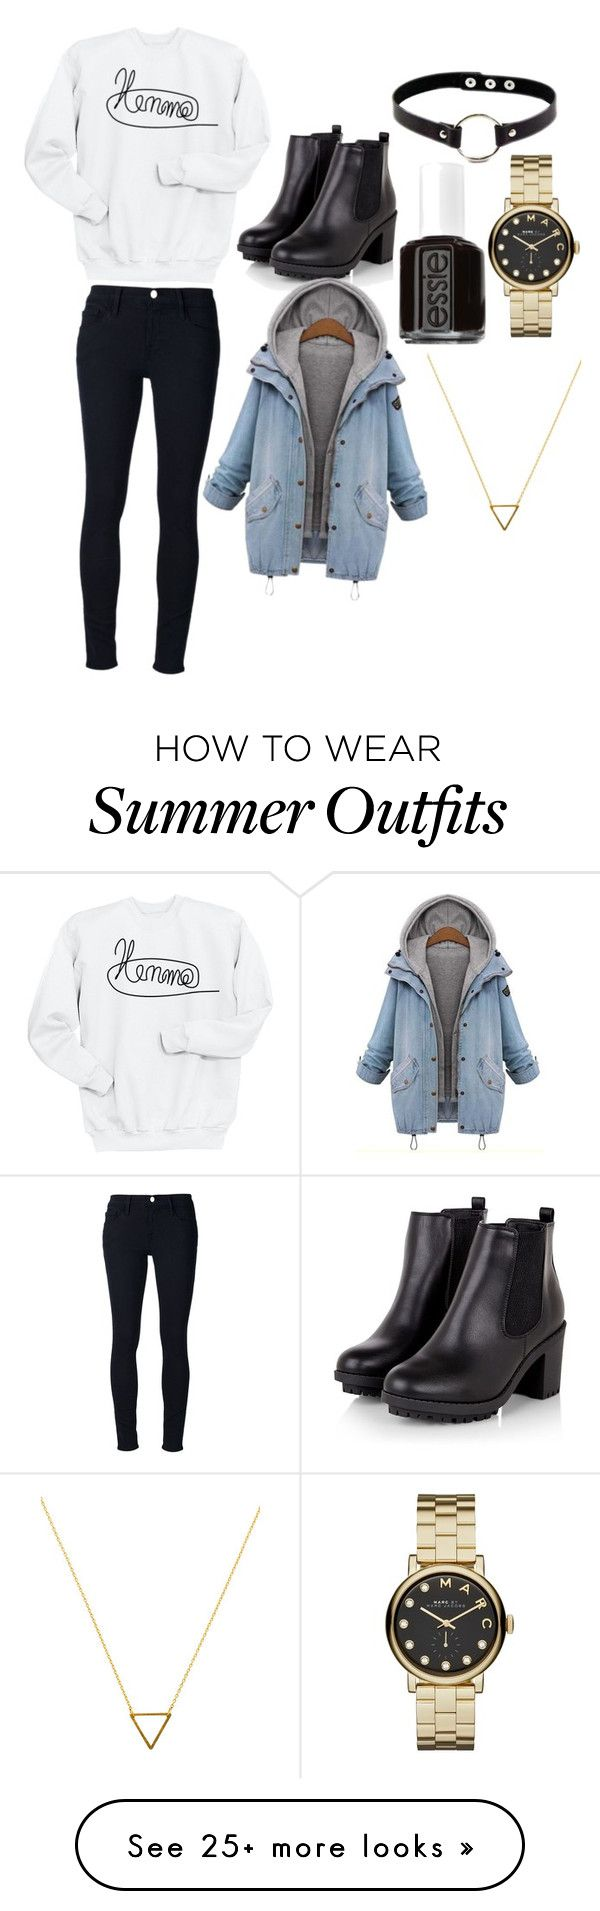 """Outfit for Sophia"" by cineyxx on Polyvore featuring Frame Denim, Amaya, Essie, Marc by Marc Jacobs and Wanderlust + Co"